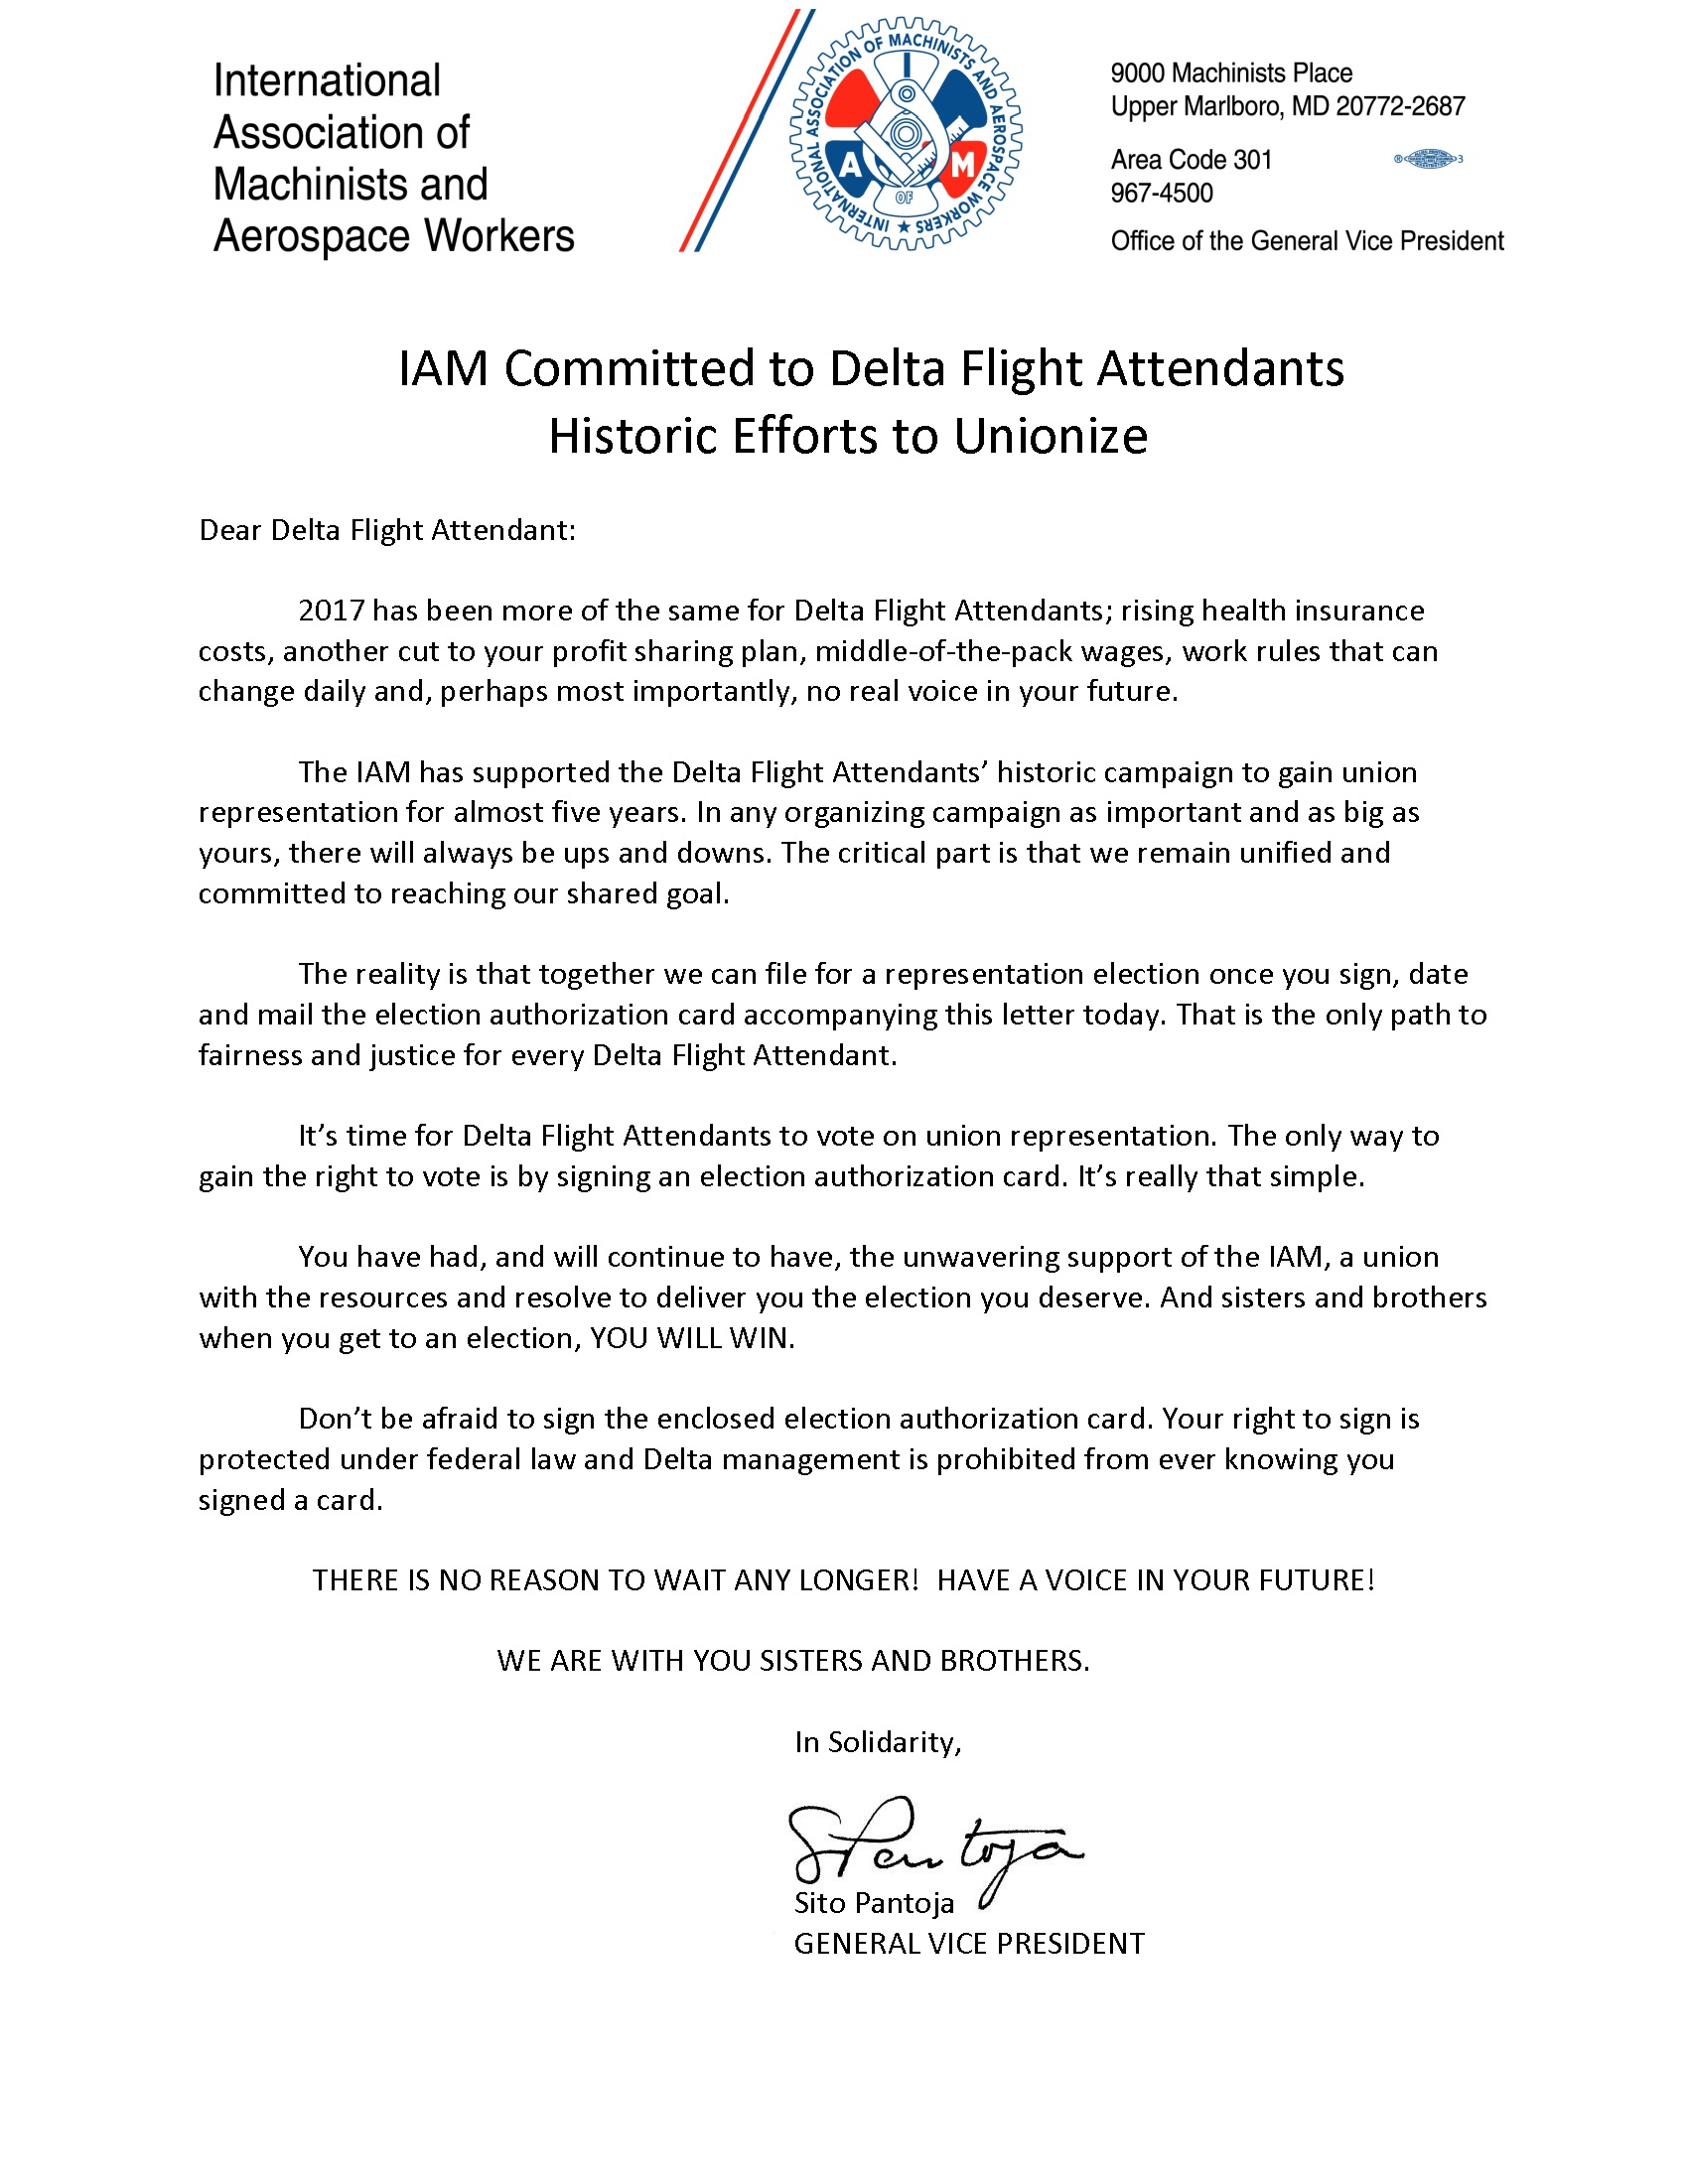 IAM Delta Flight Attendants Latest News And Info - Area code 301 in usa